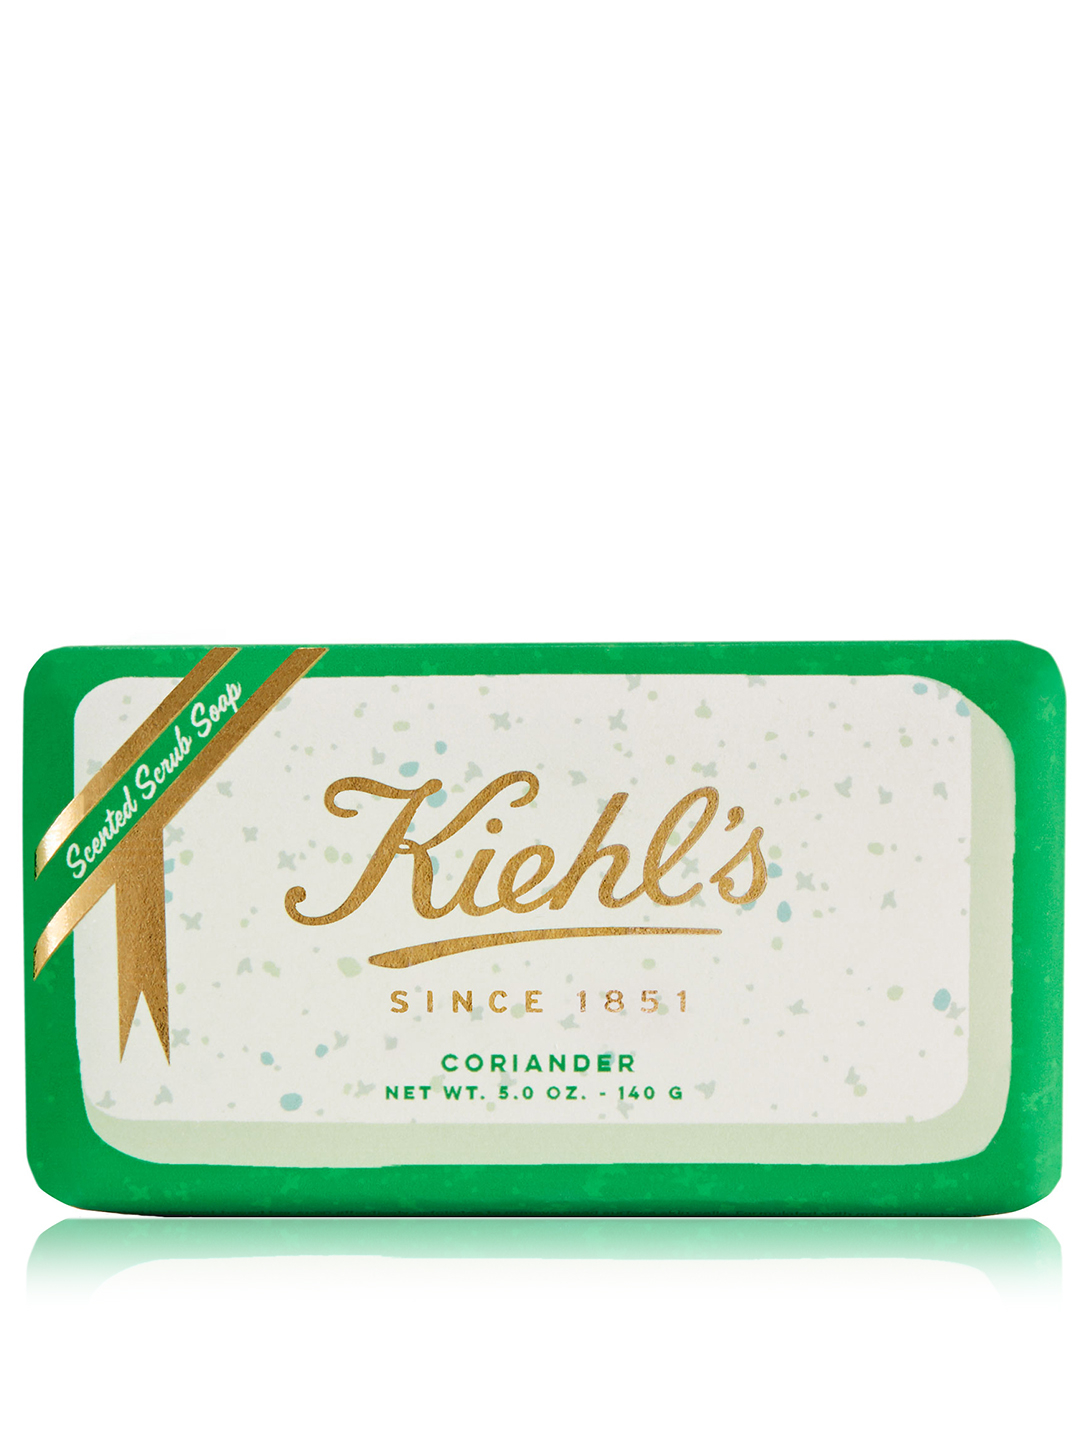 KIEHL'S Coriander Gently Exfoliating Body Scrub Soap - Limited Edition Beauty